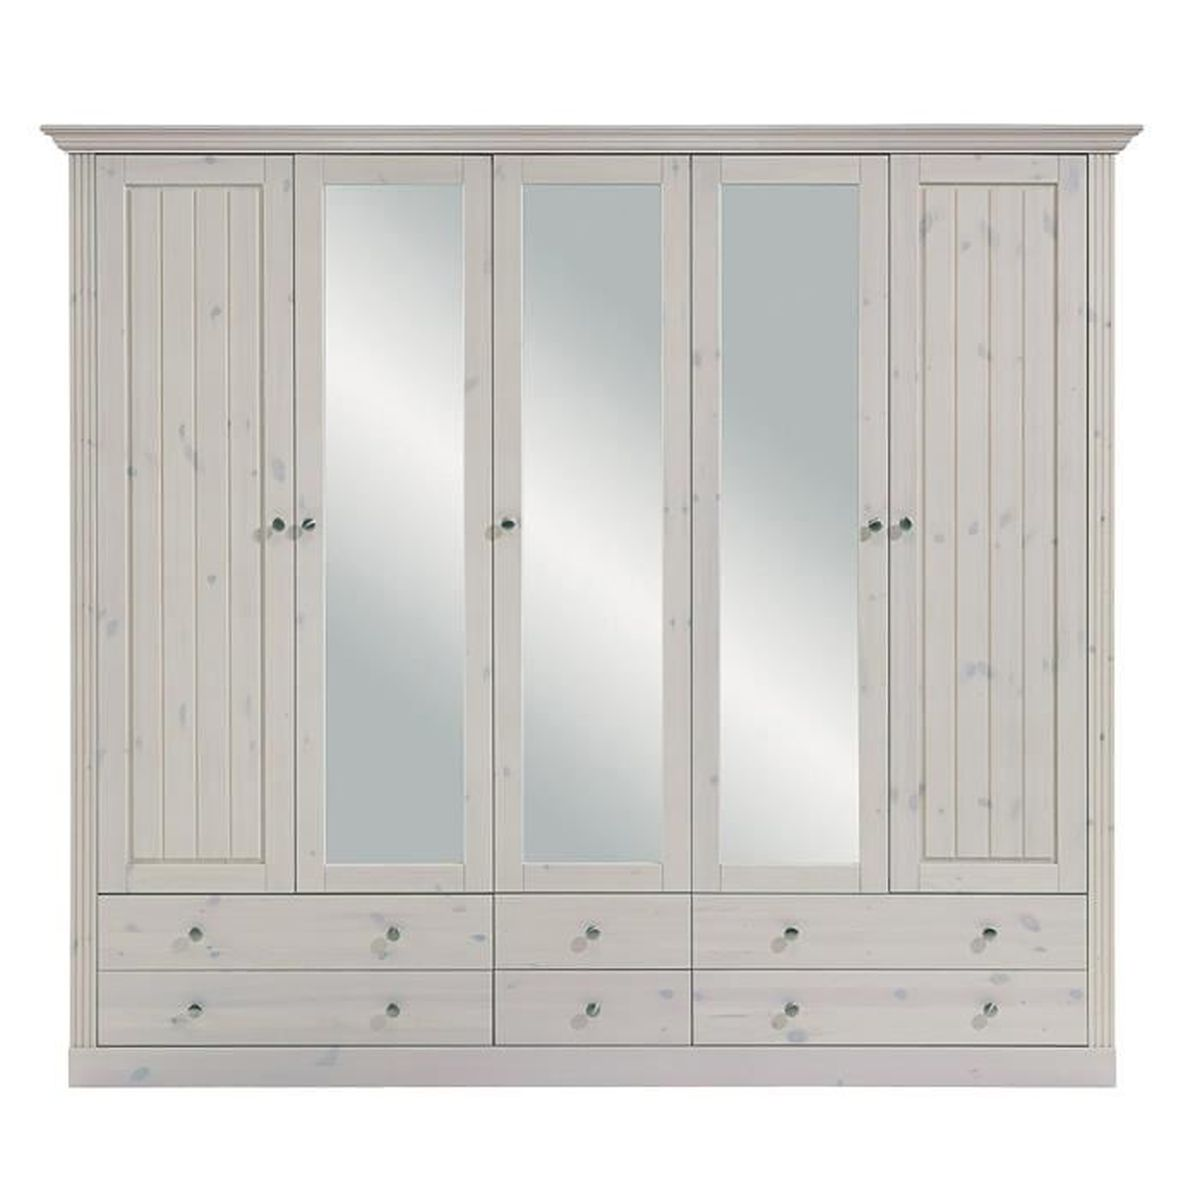 armoire en pin massif coloris blanc dim 201 x 227 x 60. Black Bedroom Furniture Sets. Home Design Ideas